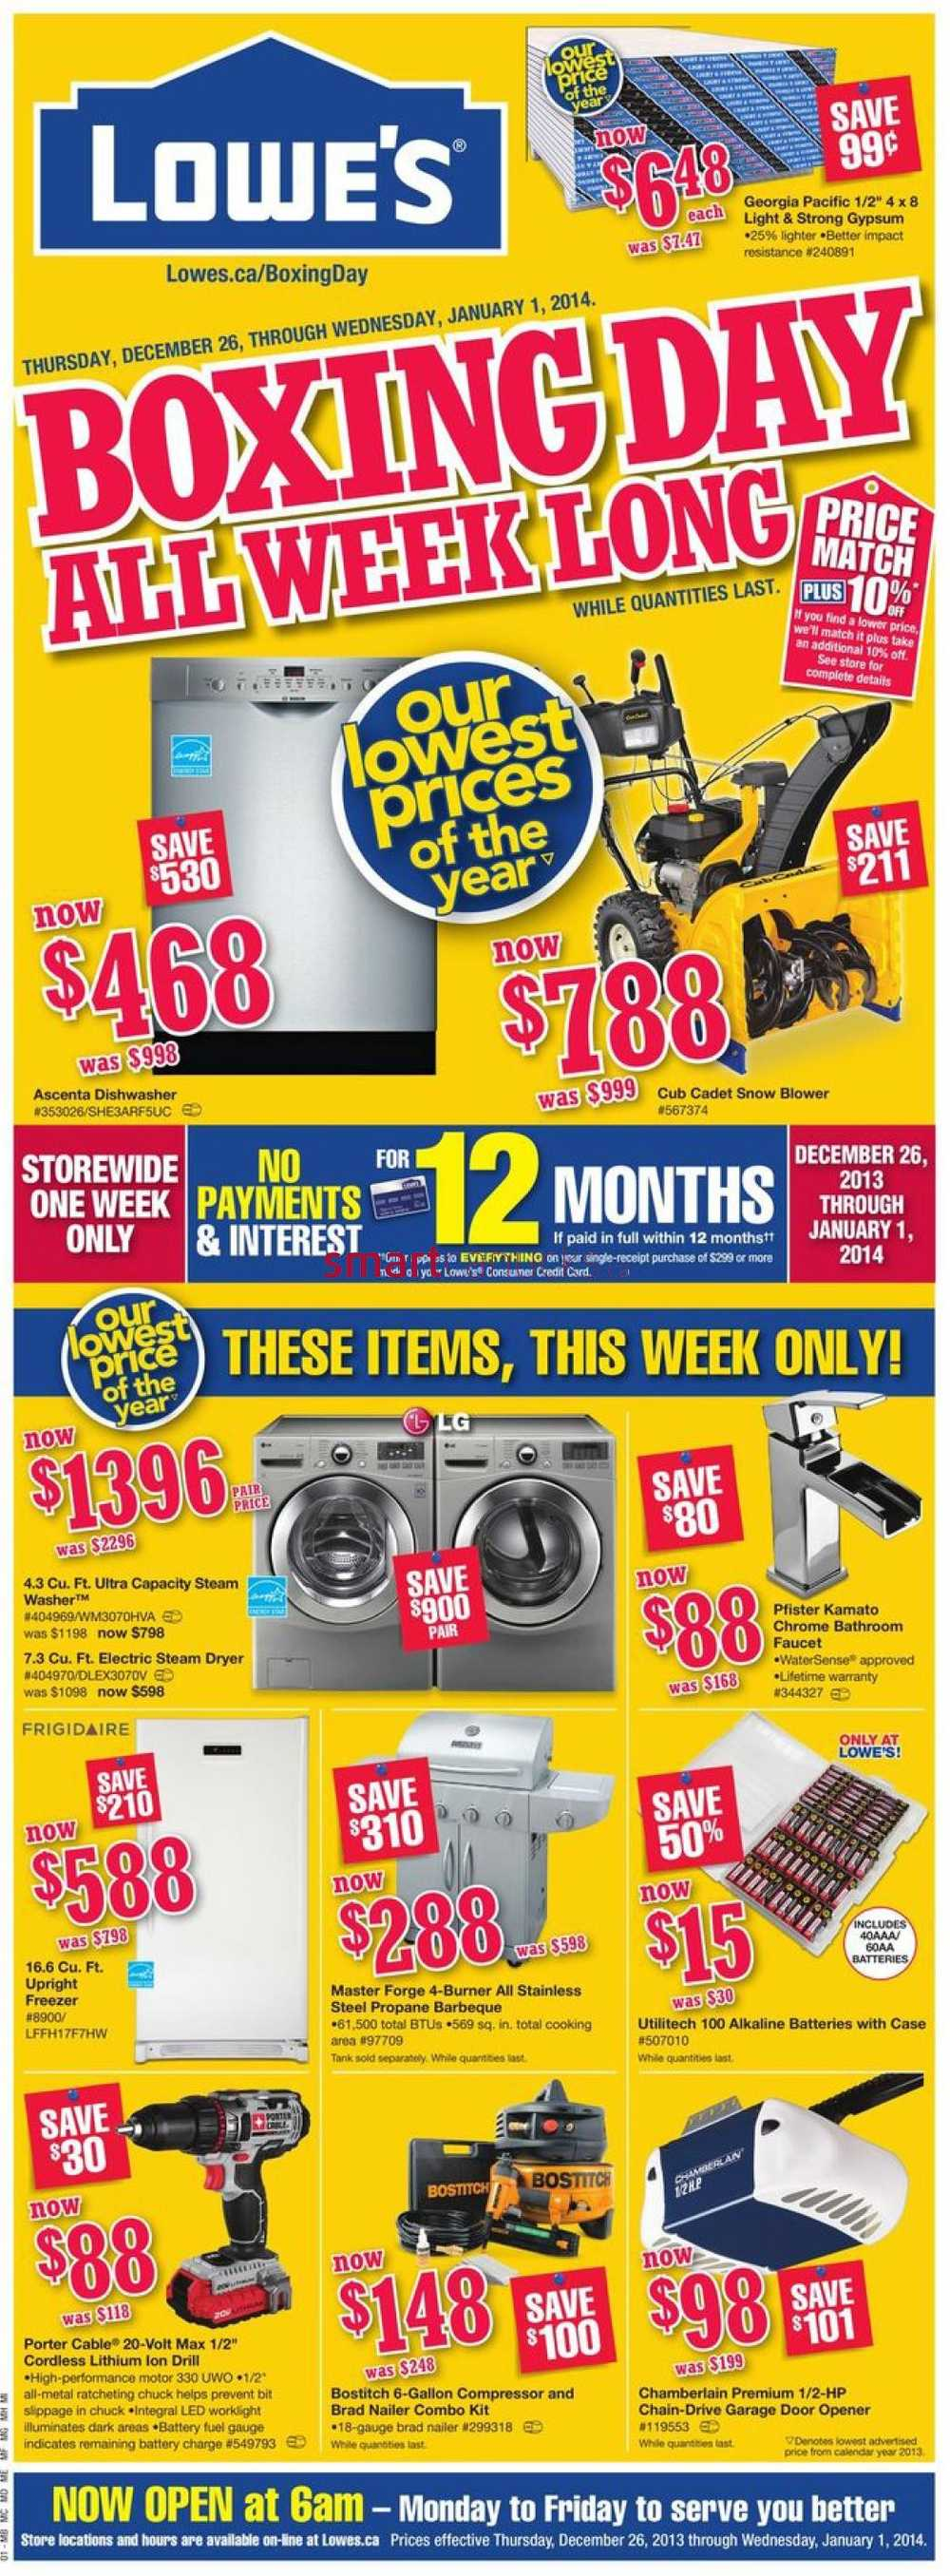 Lowes Coupon December 2013 Lowe's 2013 boxing week flyer